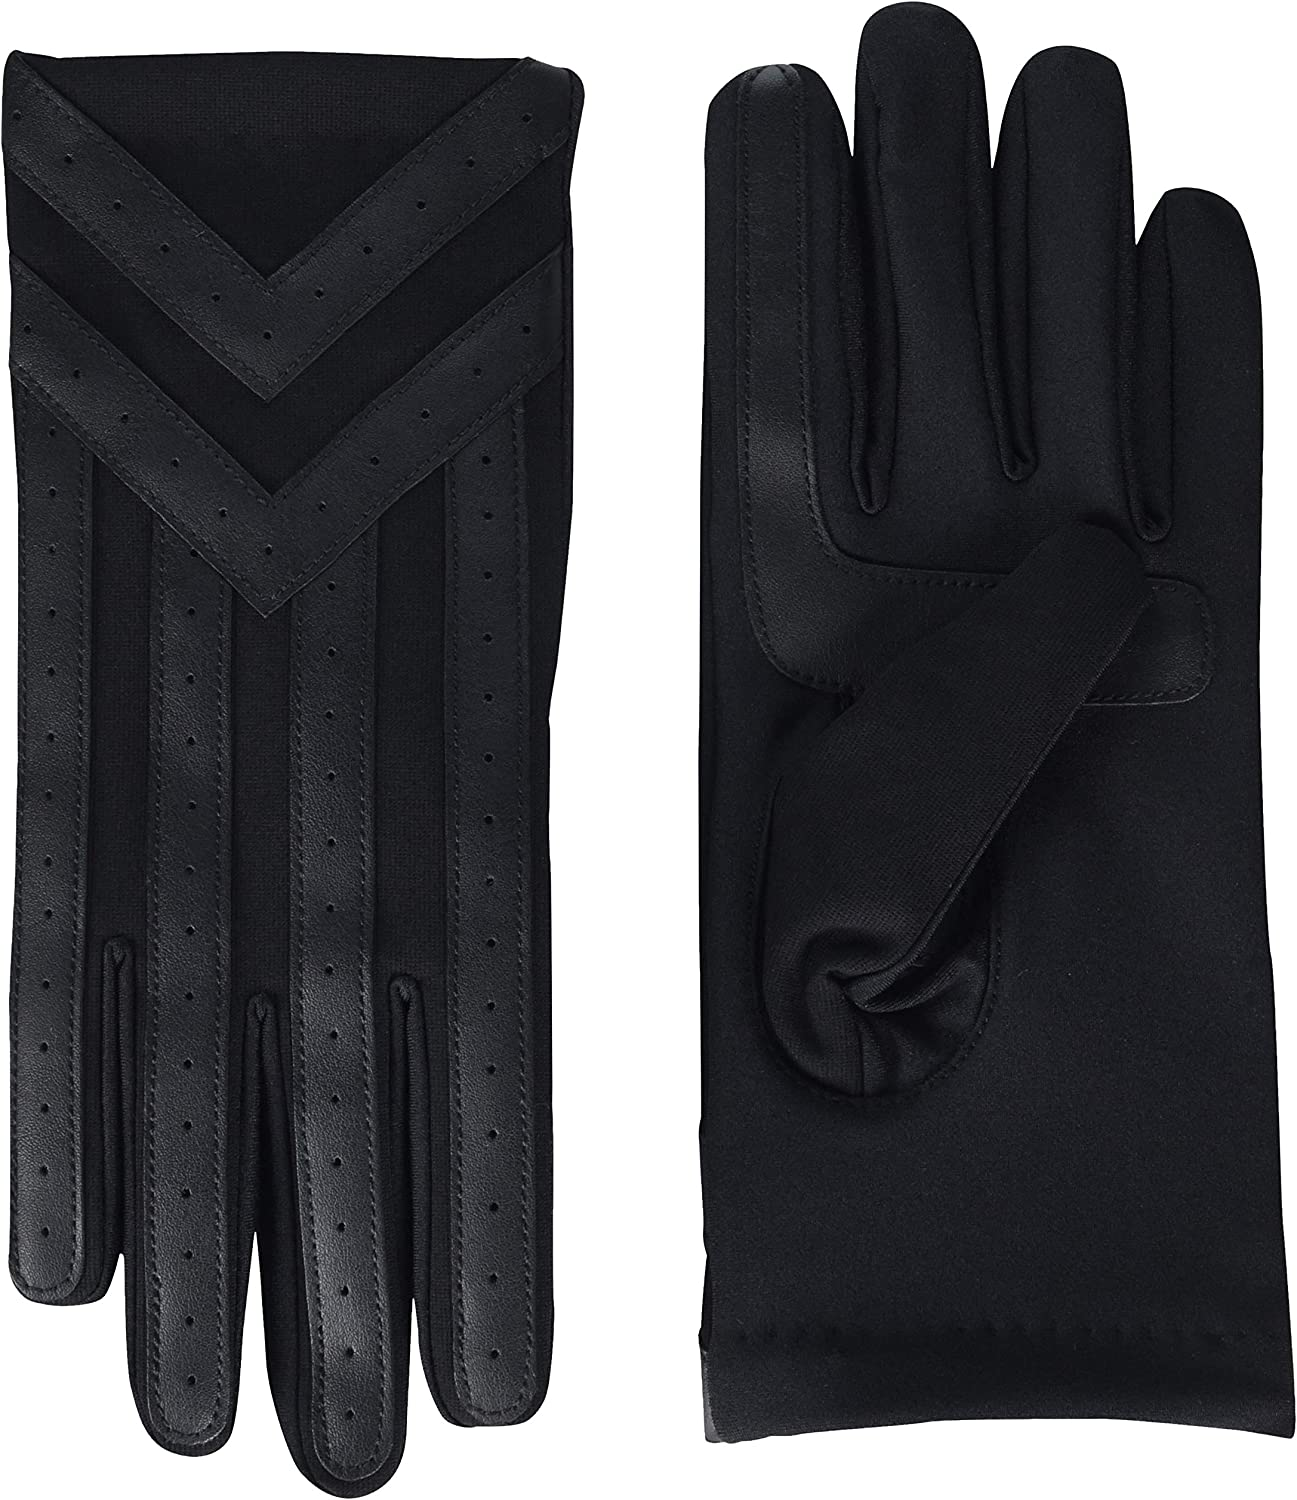 Isotoner Mens Cold Weather Touch Screen Sleek Heat Winter Gloves BHFO 4561